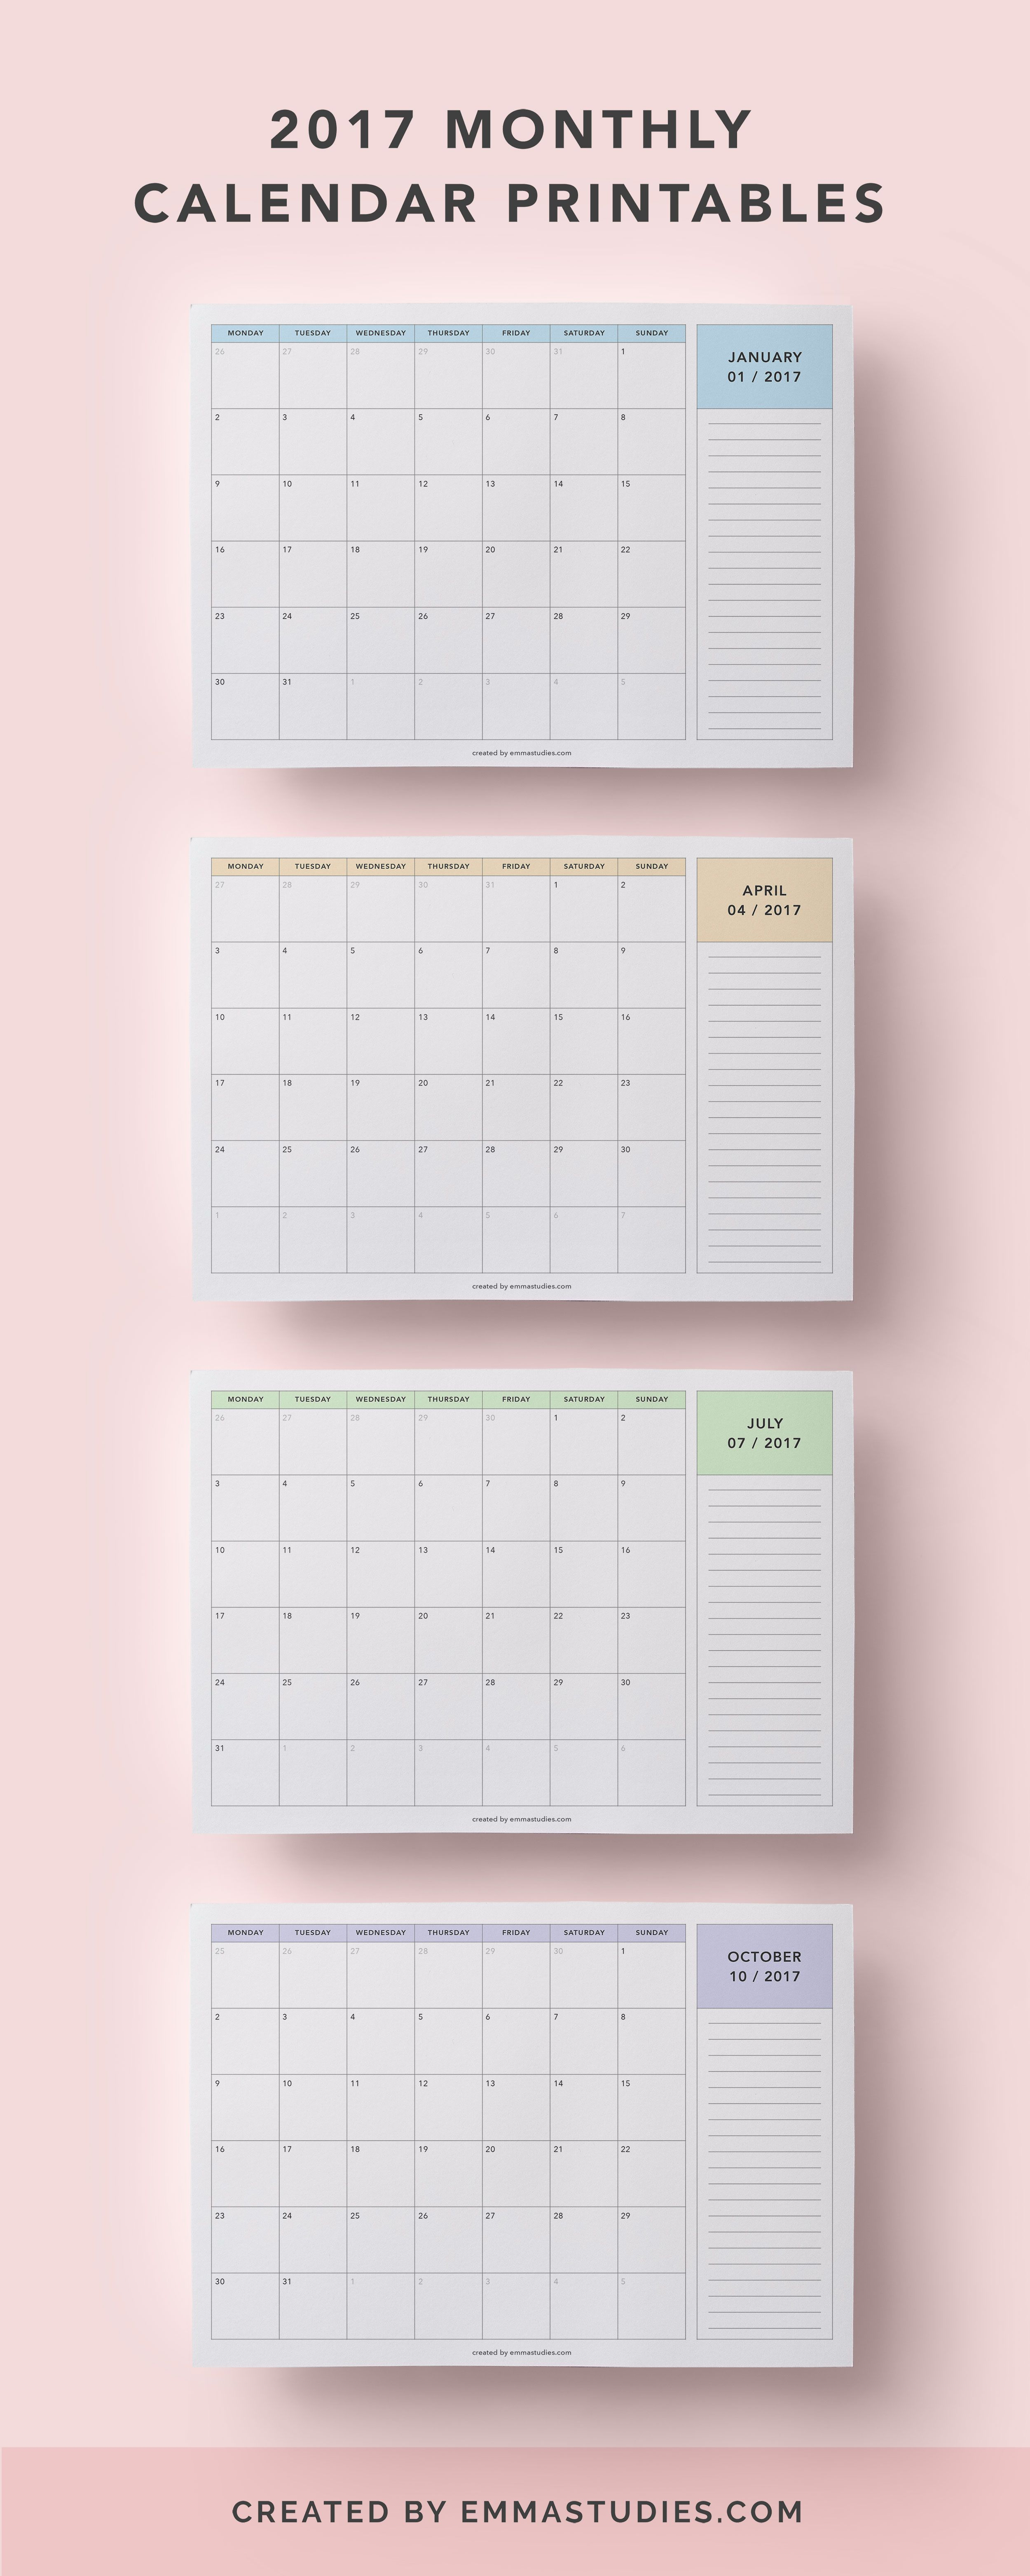 2017 Monthly Calendar Printables Free To Download By Emmastudies In Pastel  Colours (Peach, Blue